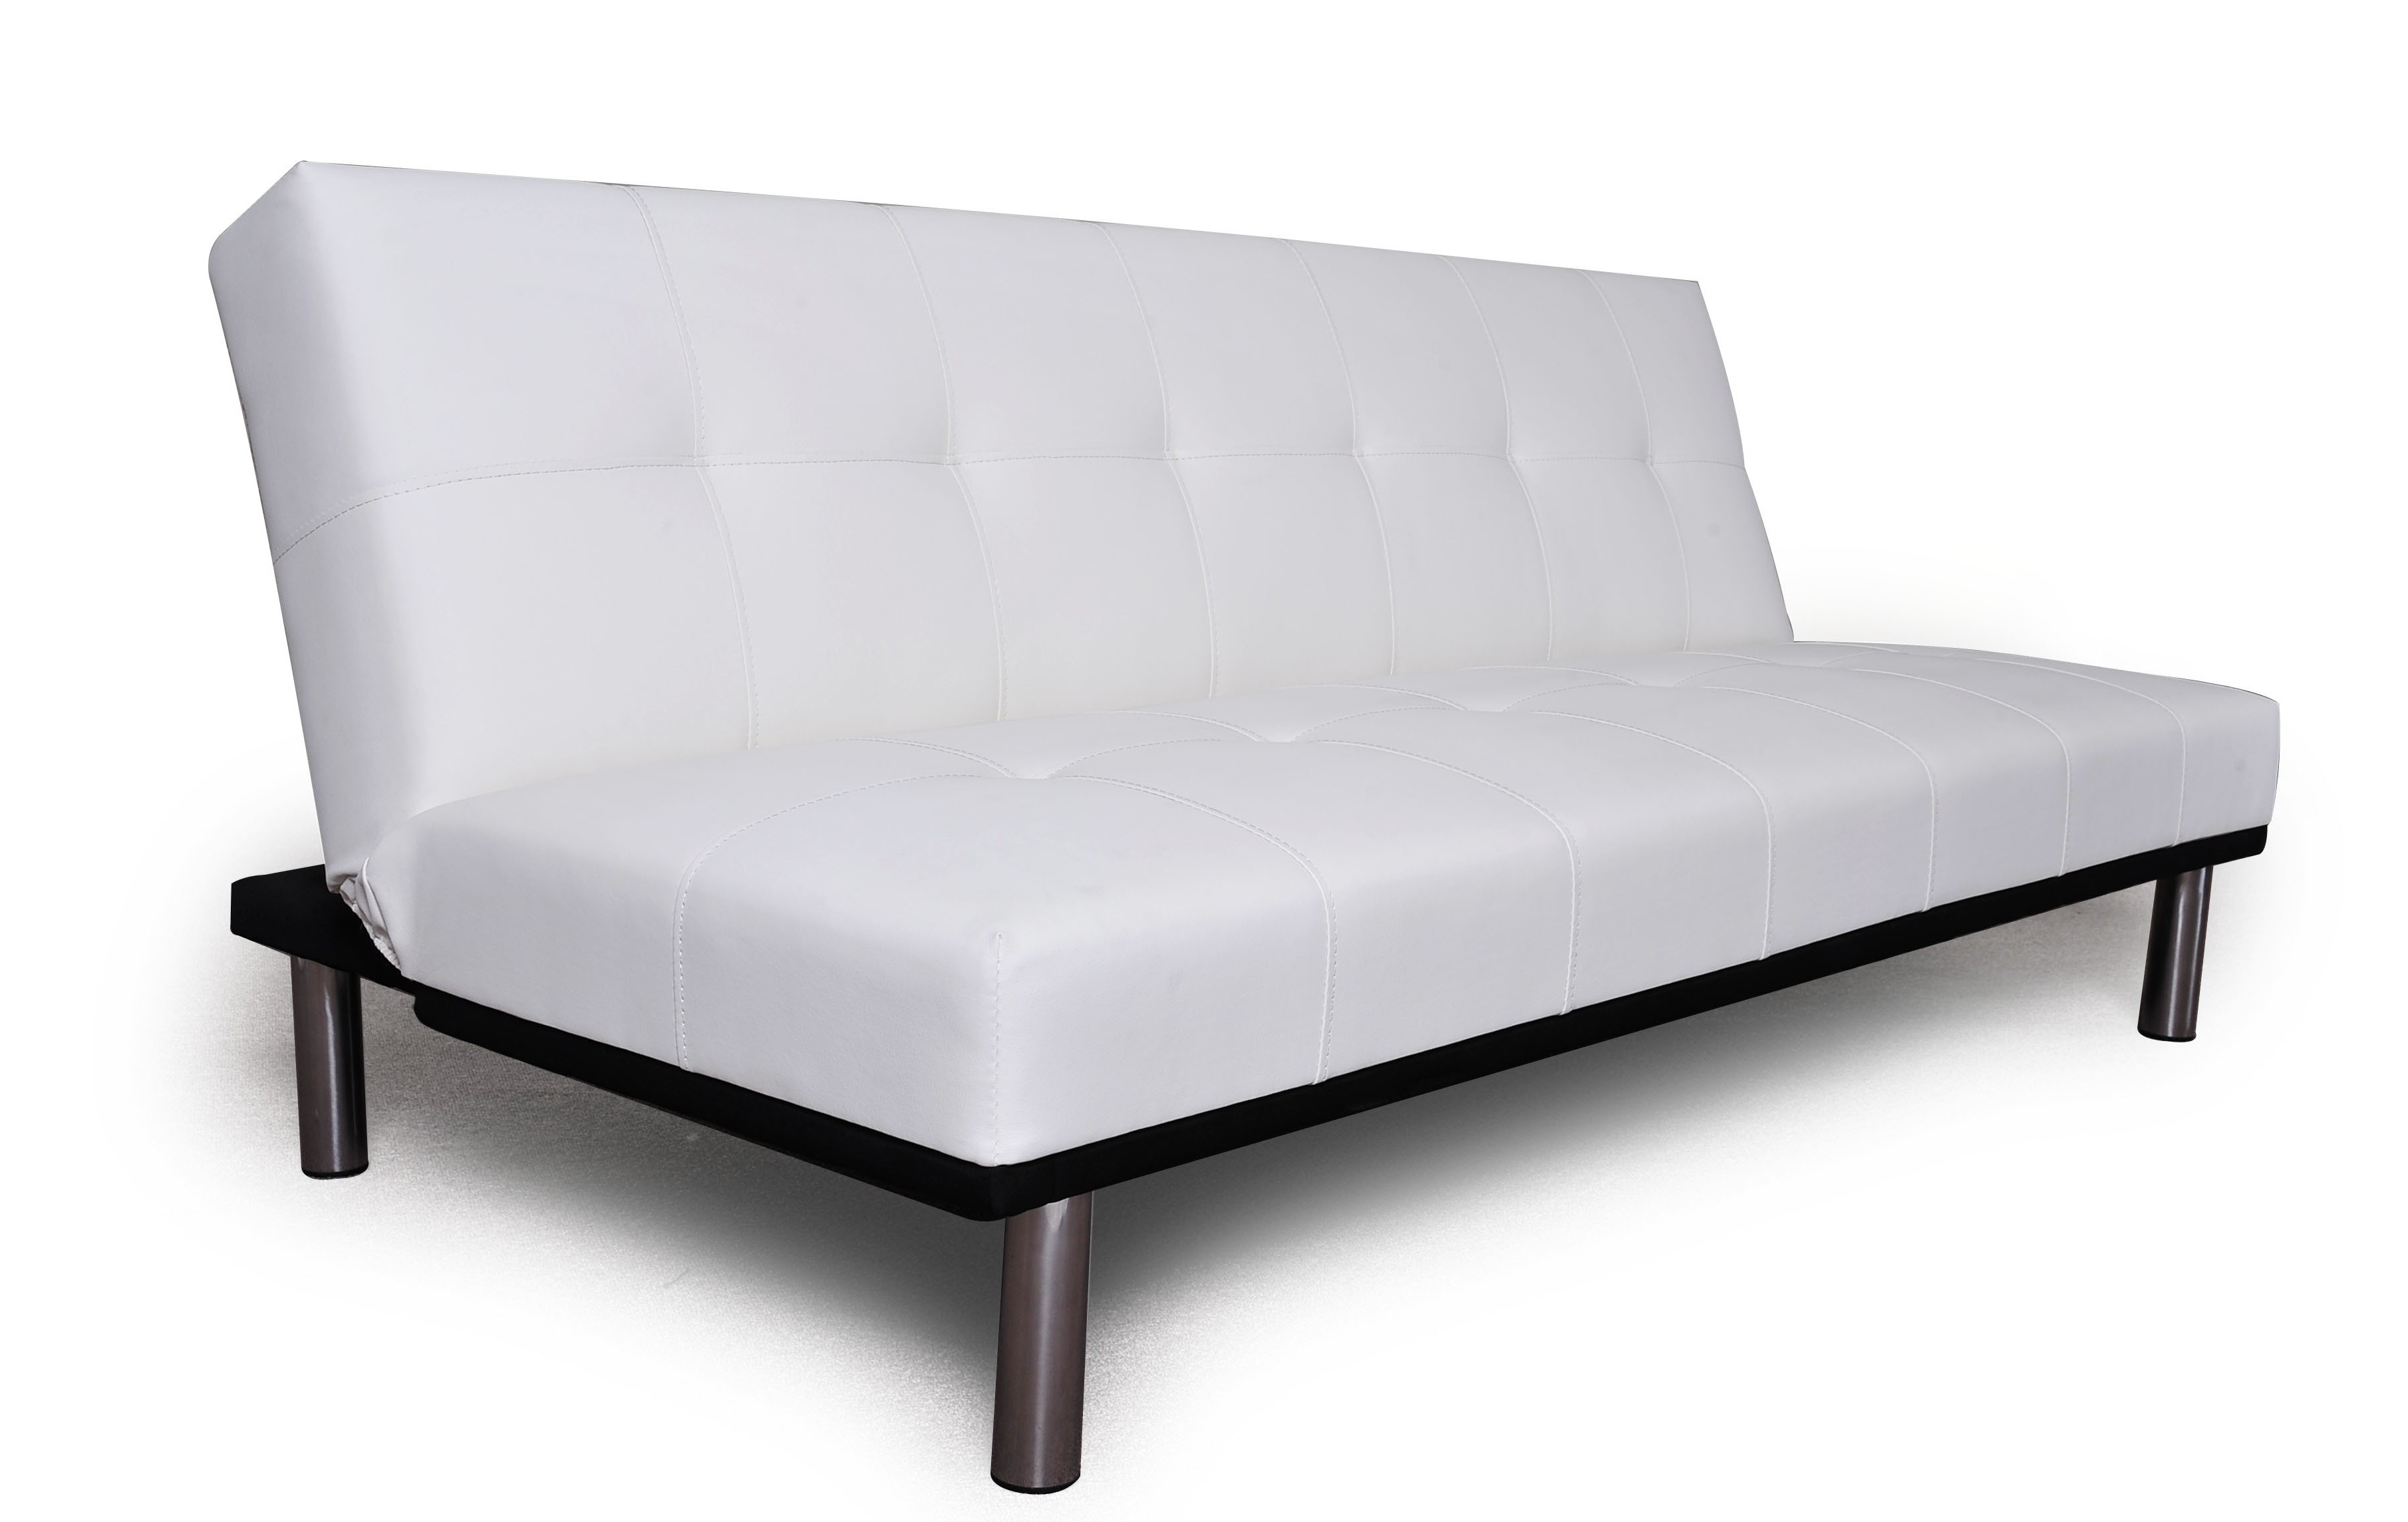 Sillon Futon Cama Zen Reclinable Blanco